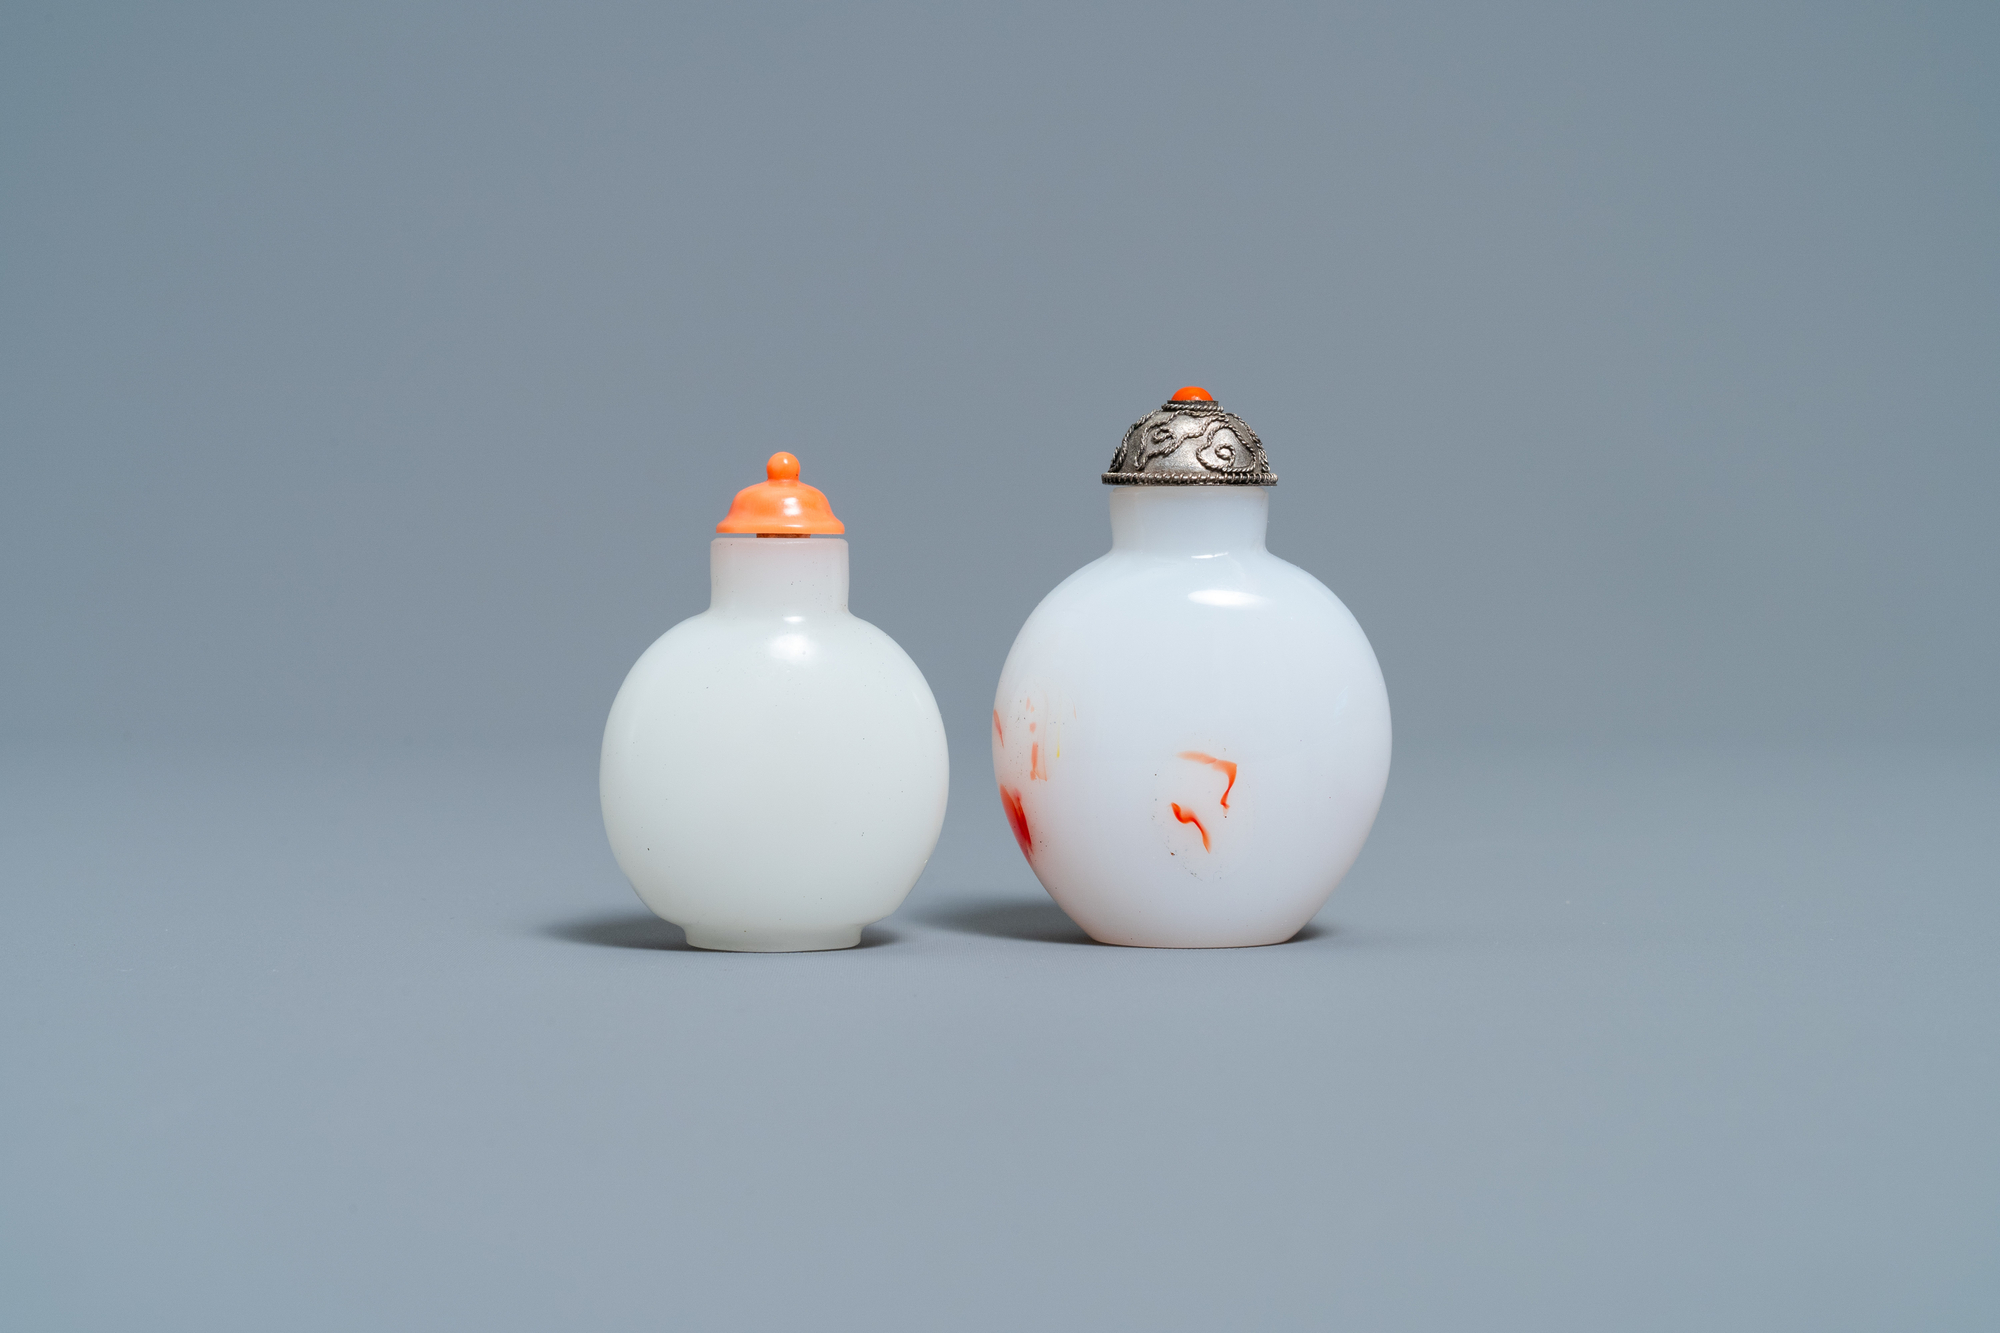 A Chinese white jade coral-topped snuff bottle and one in glass with inclusions, 19th C. - Image 4 of 7